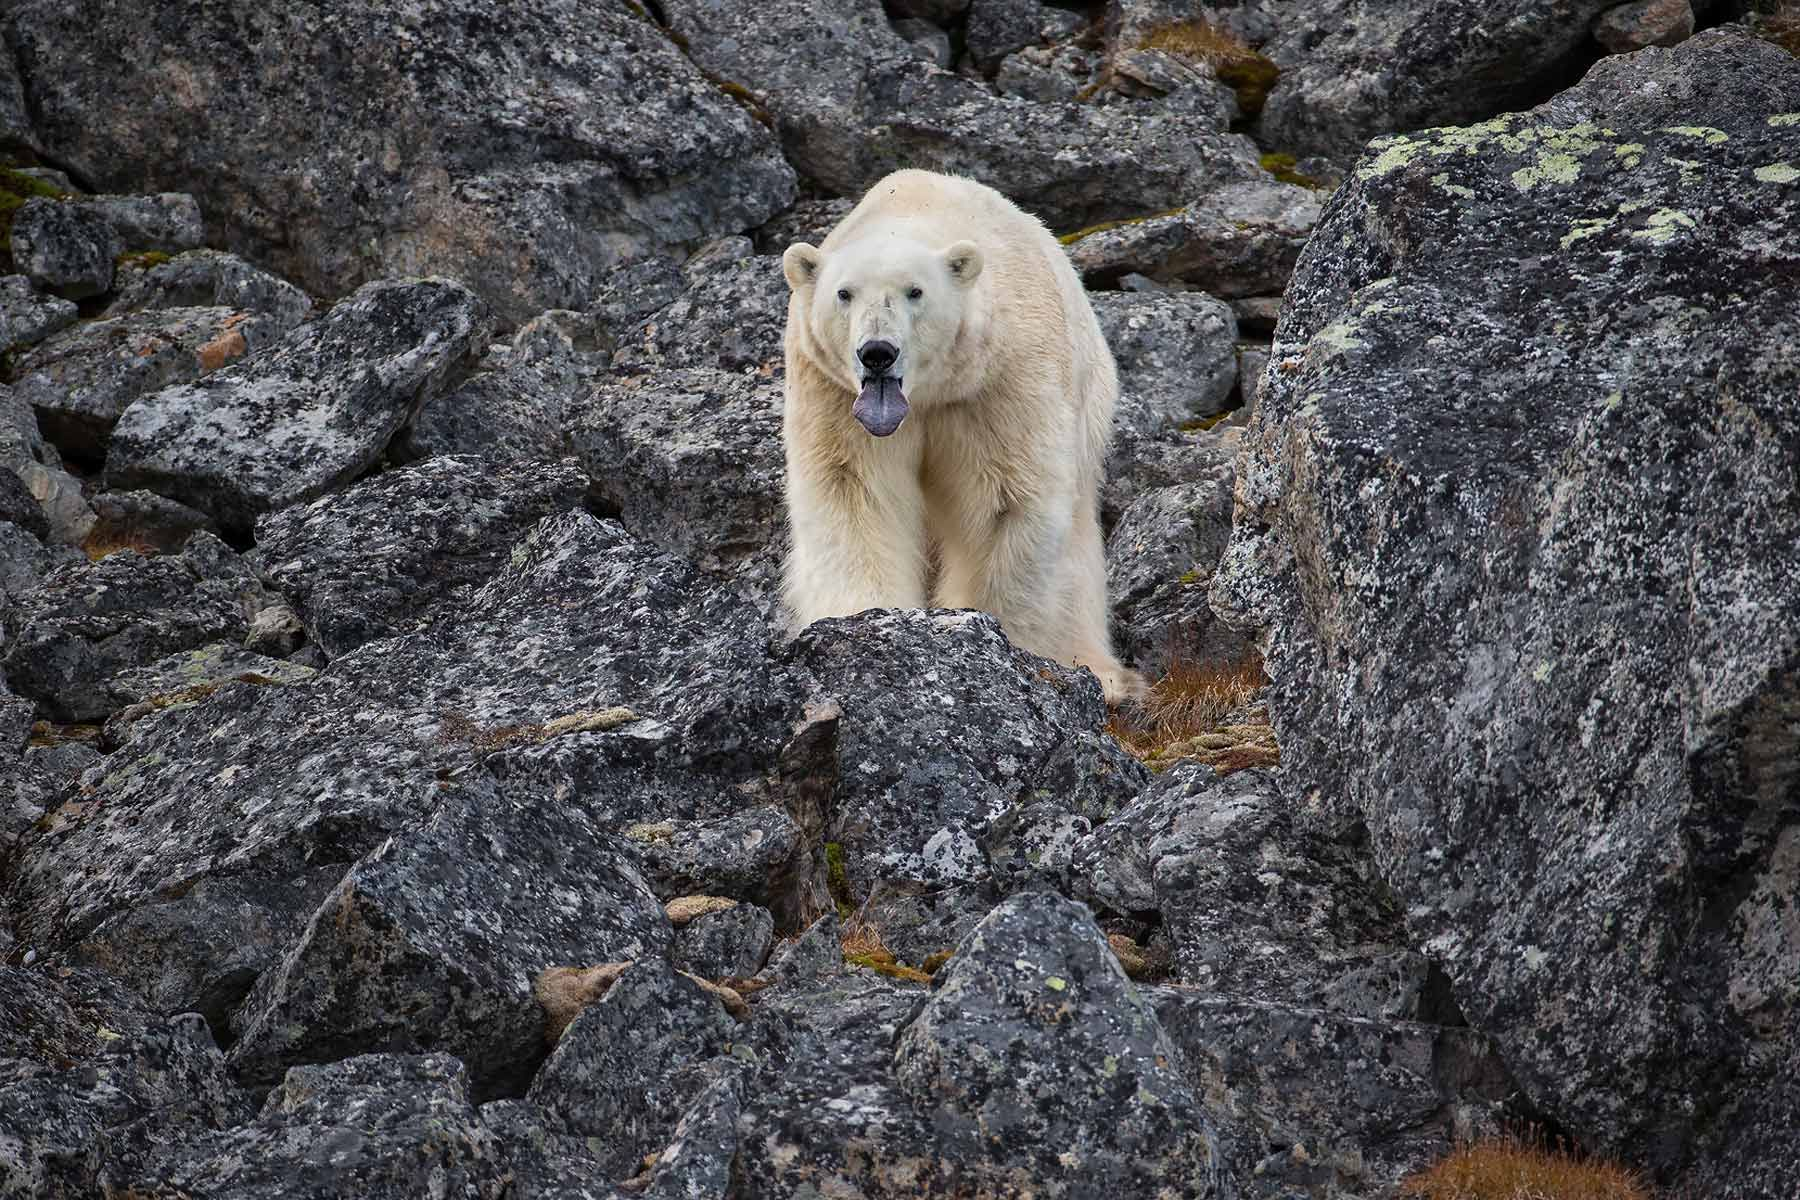 Polar-bear-looking-straight-with-tongue-out_E7T3051-Hamiltonbuka,-Svalbard,-Arctic.jpg